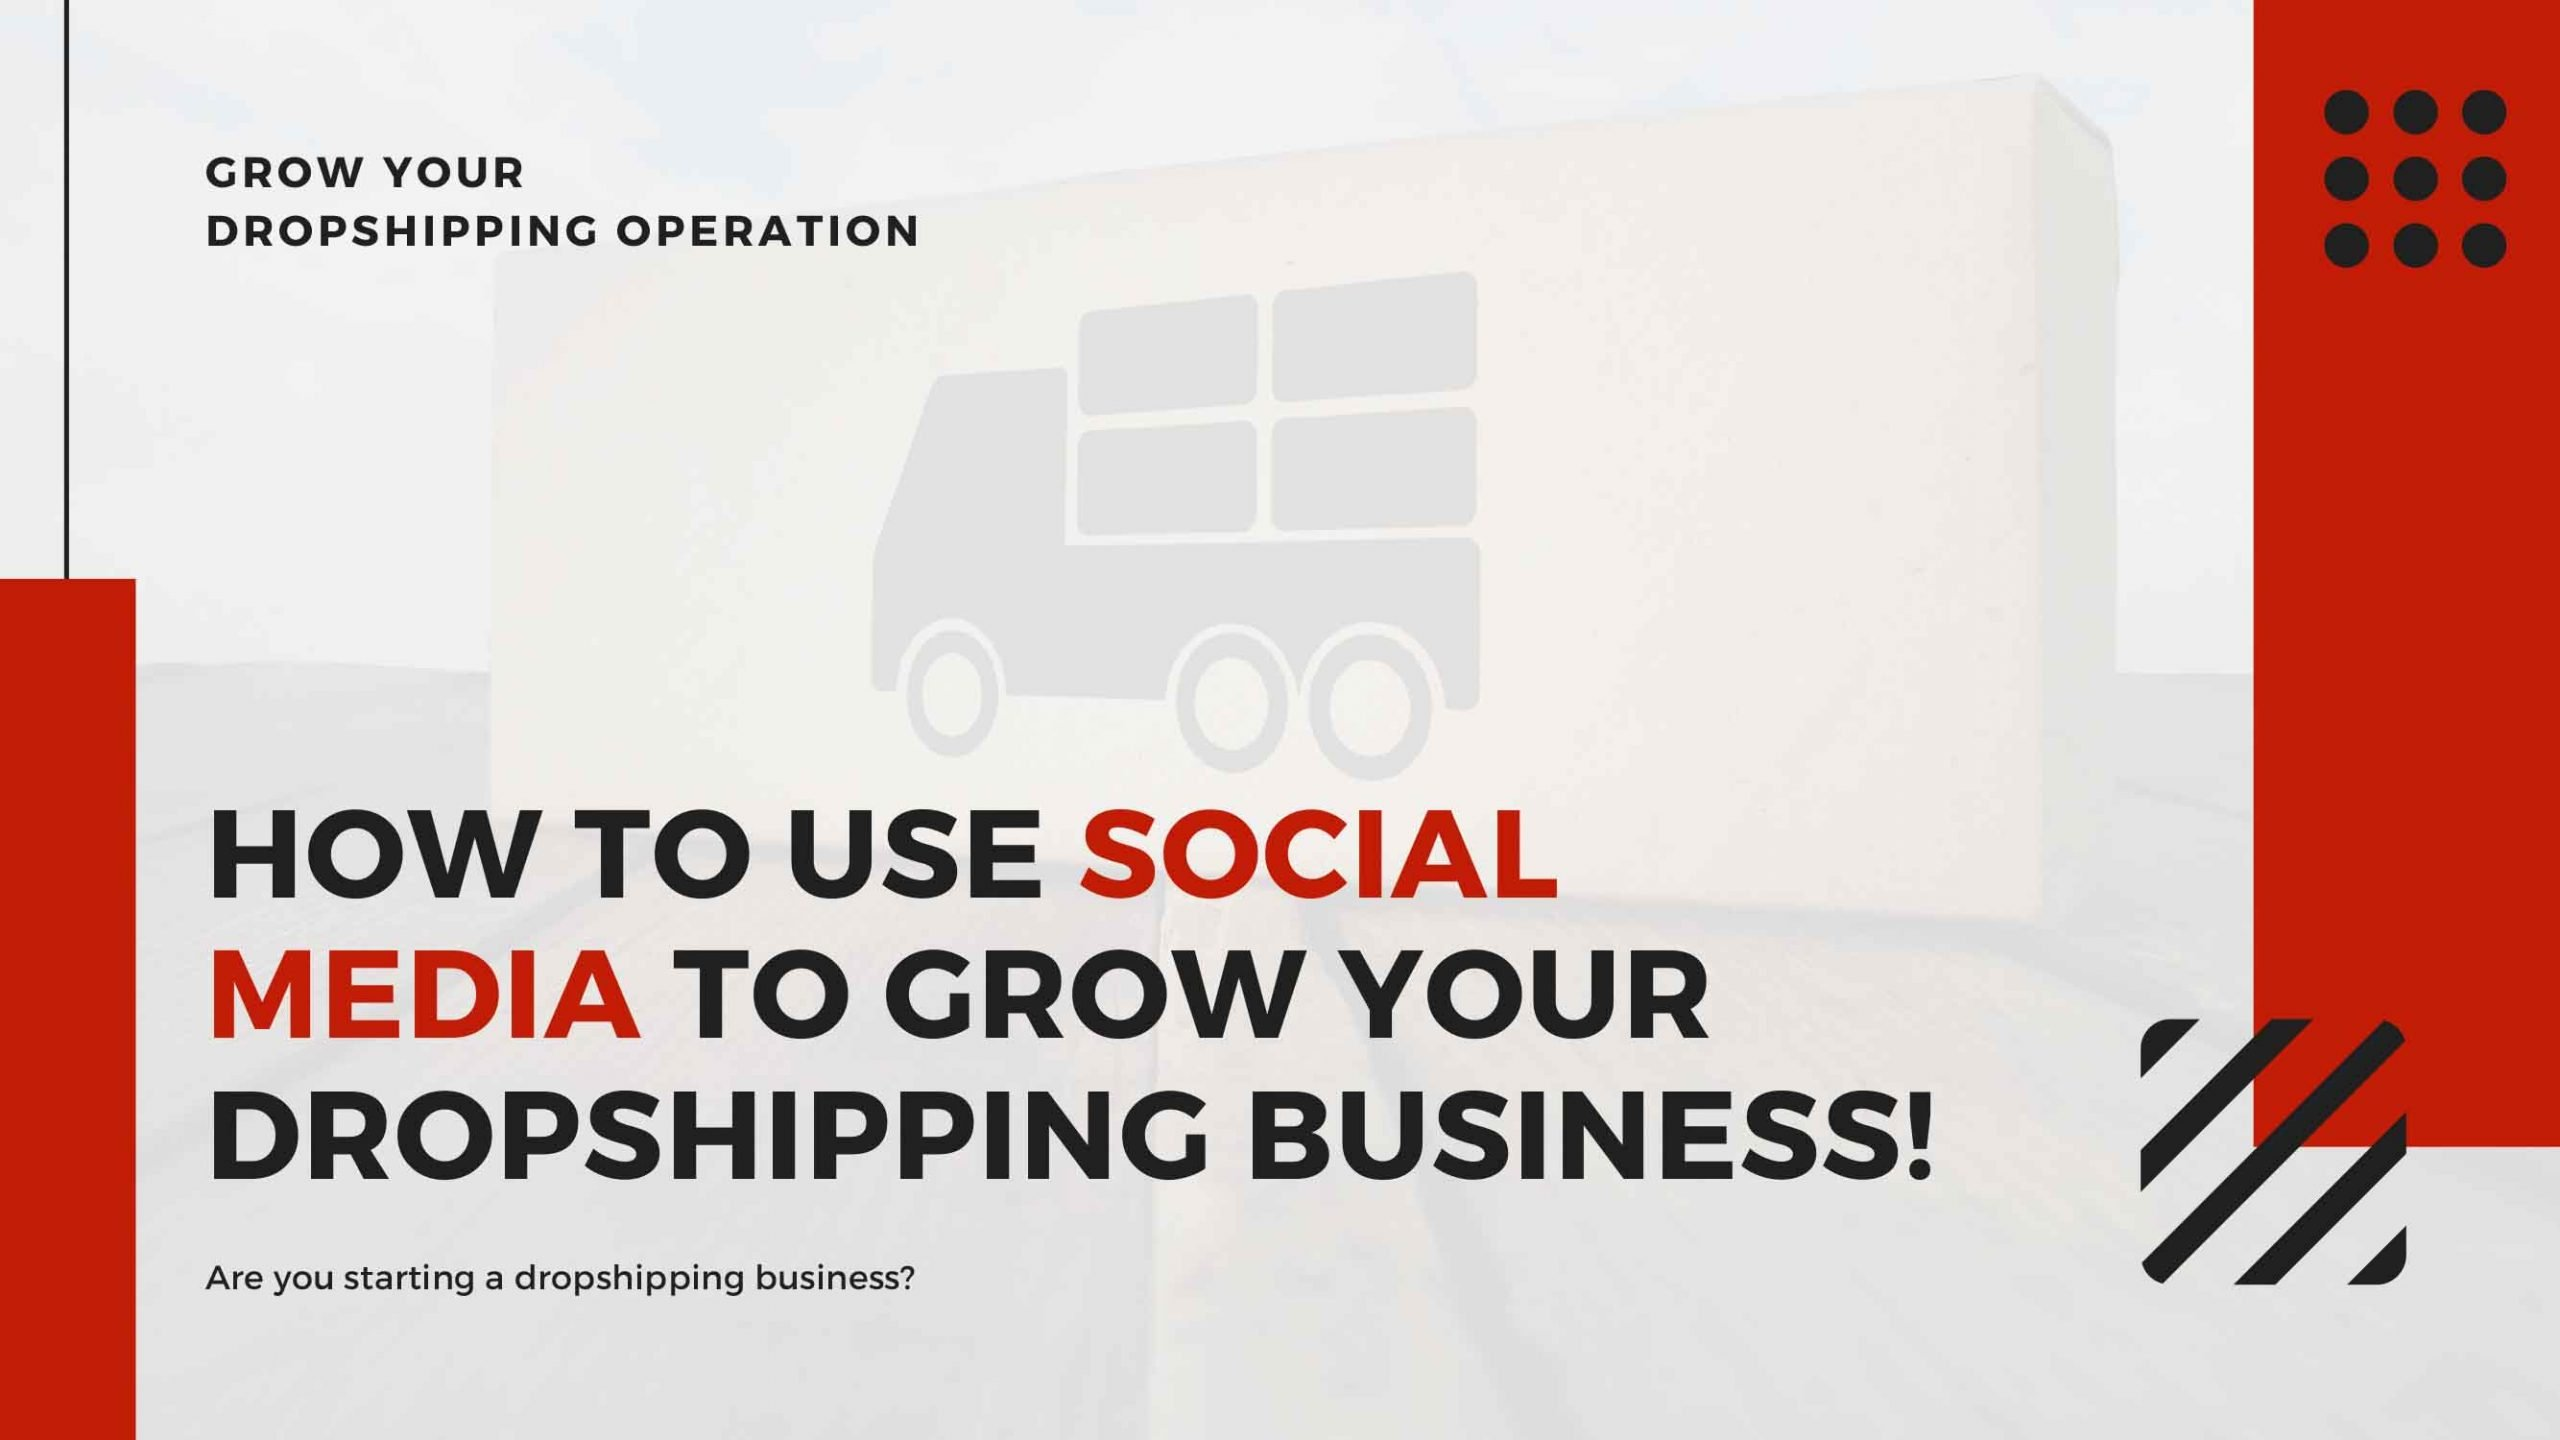 Simple Guide To Using Social Media To Grow Your Dropshipping Operation